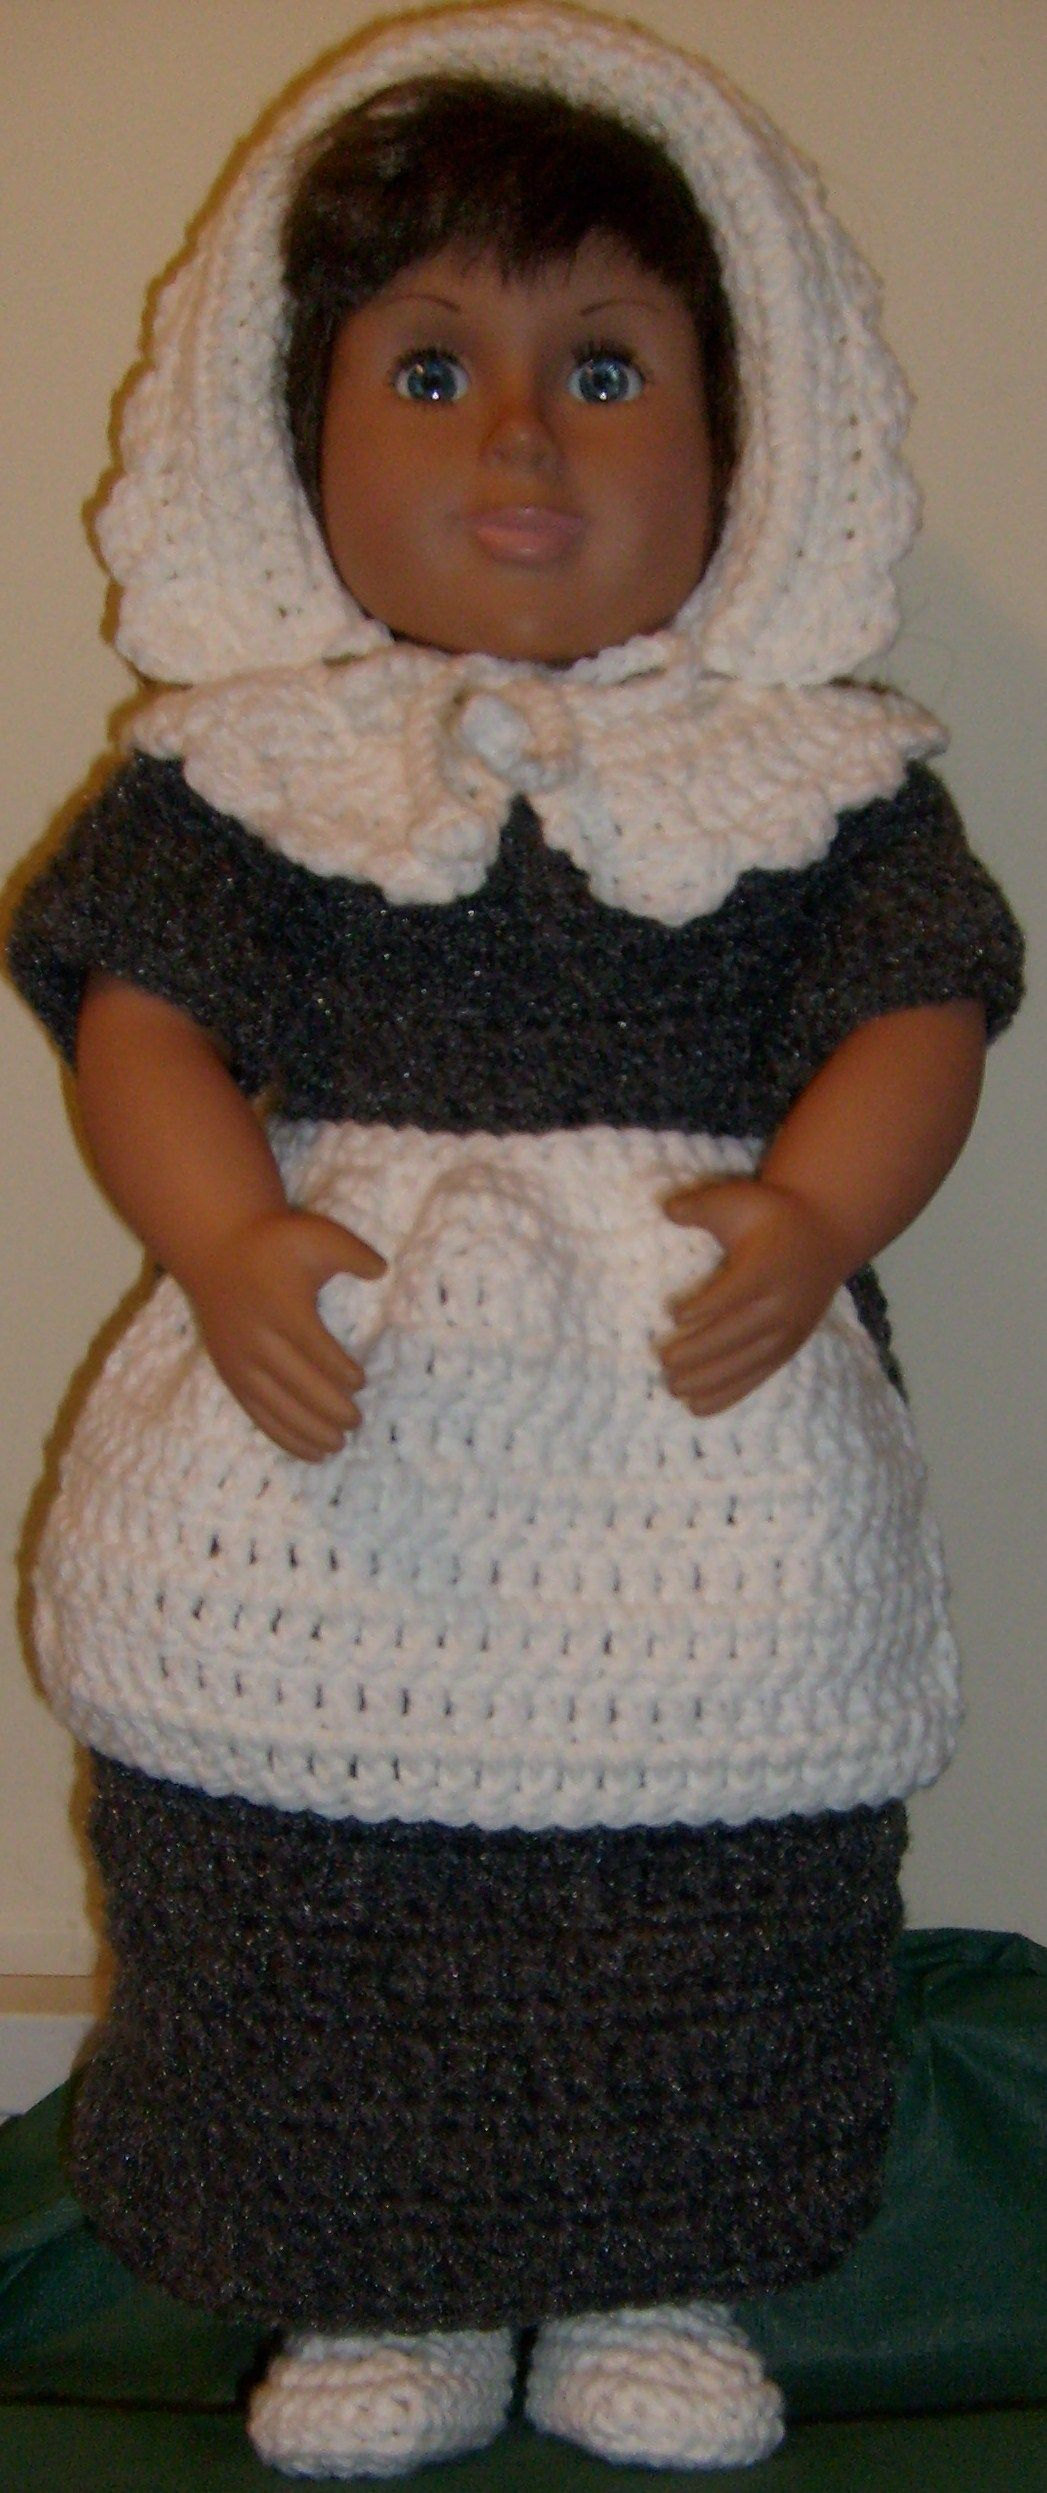 Thanksgiving outfit. | American Girl Doll Cloths | Pinterest ...